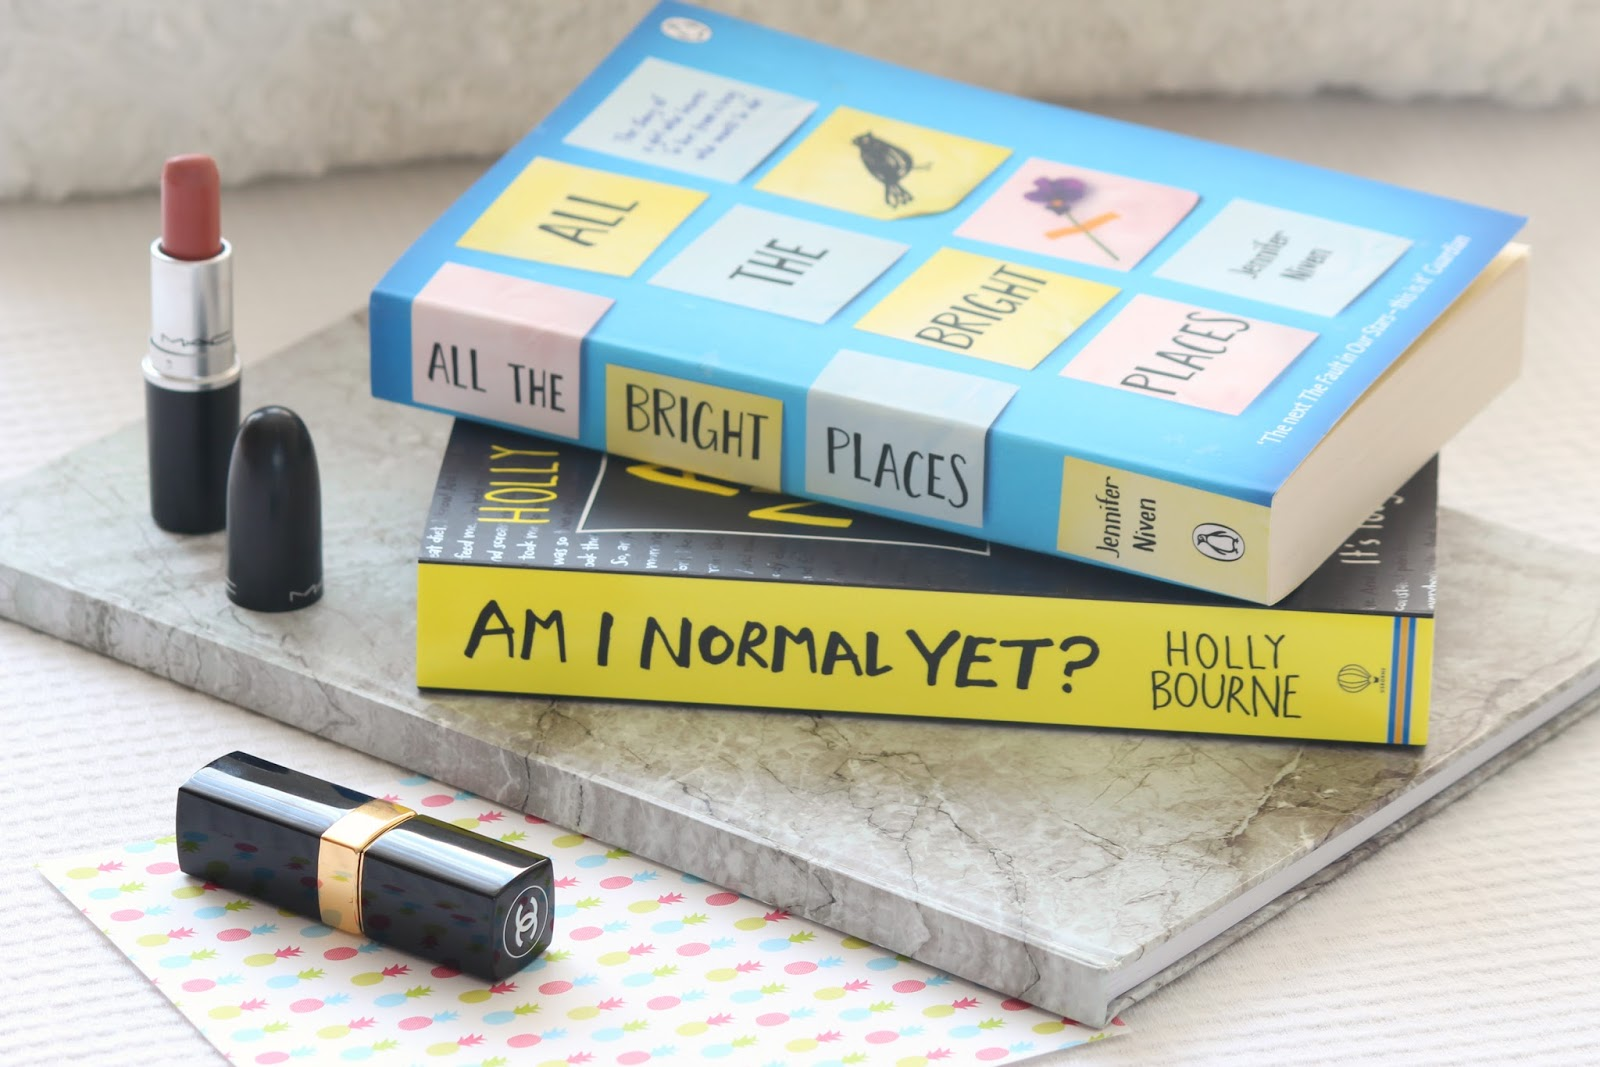 introvert extrovert blog am I normal yet? All the bright places